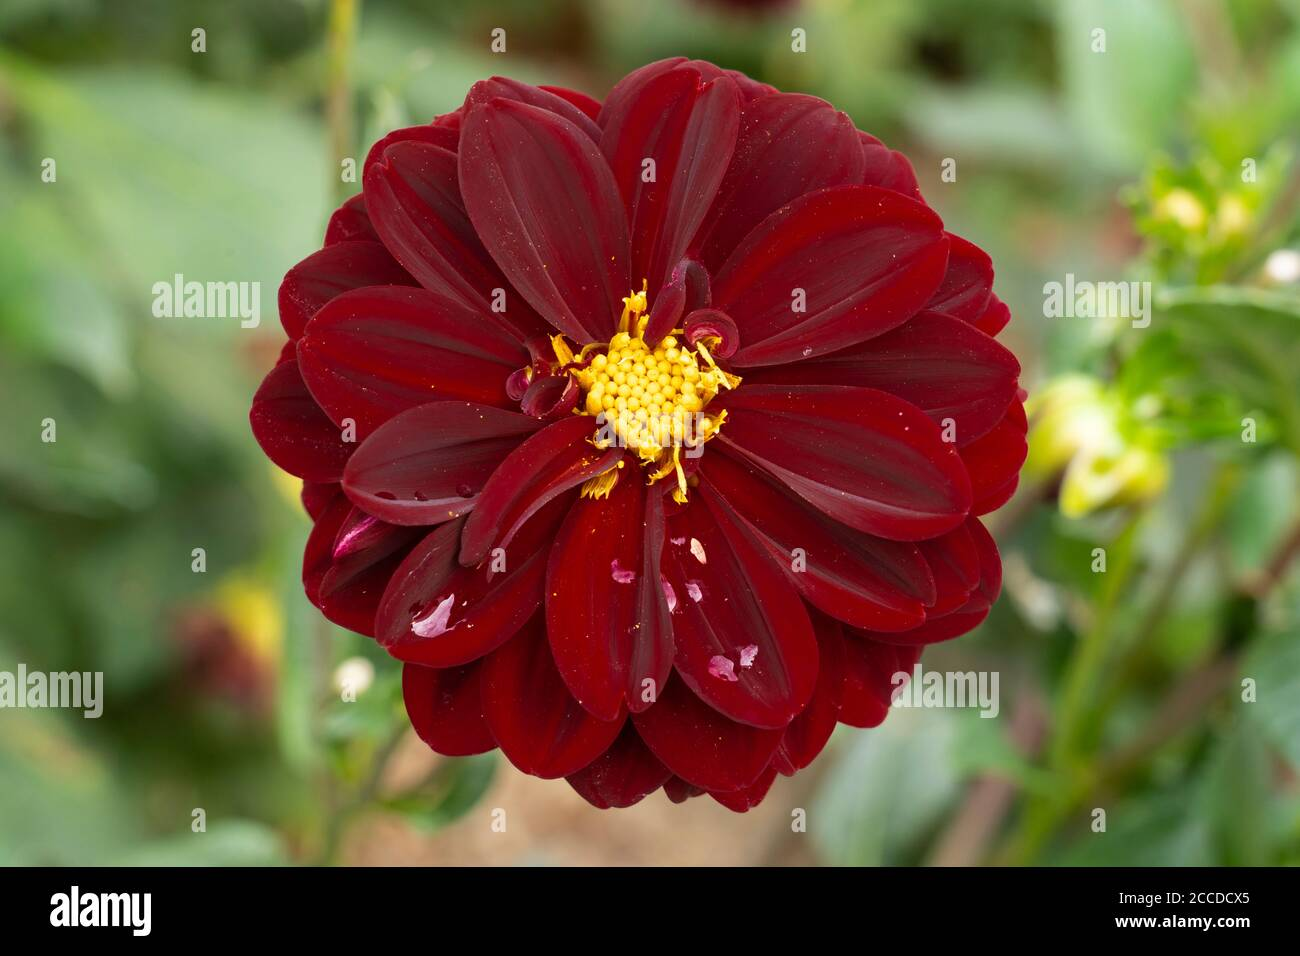 intense-dark-red-flower-with-a-compact-y